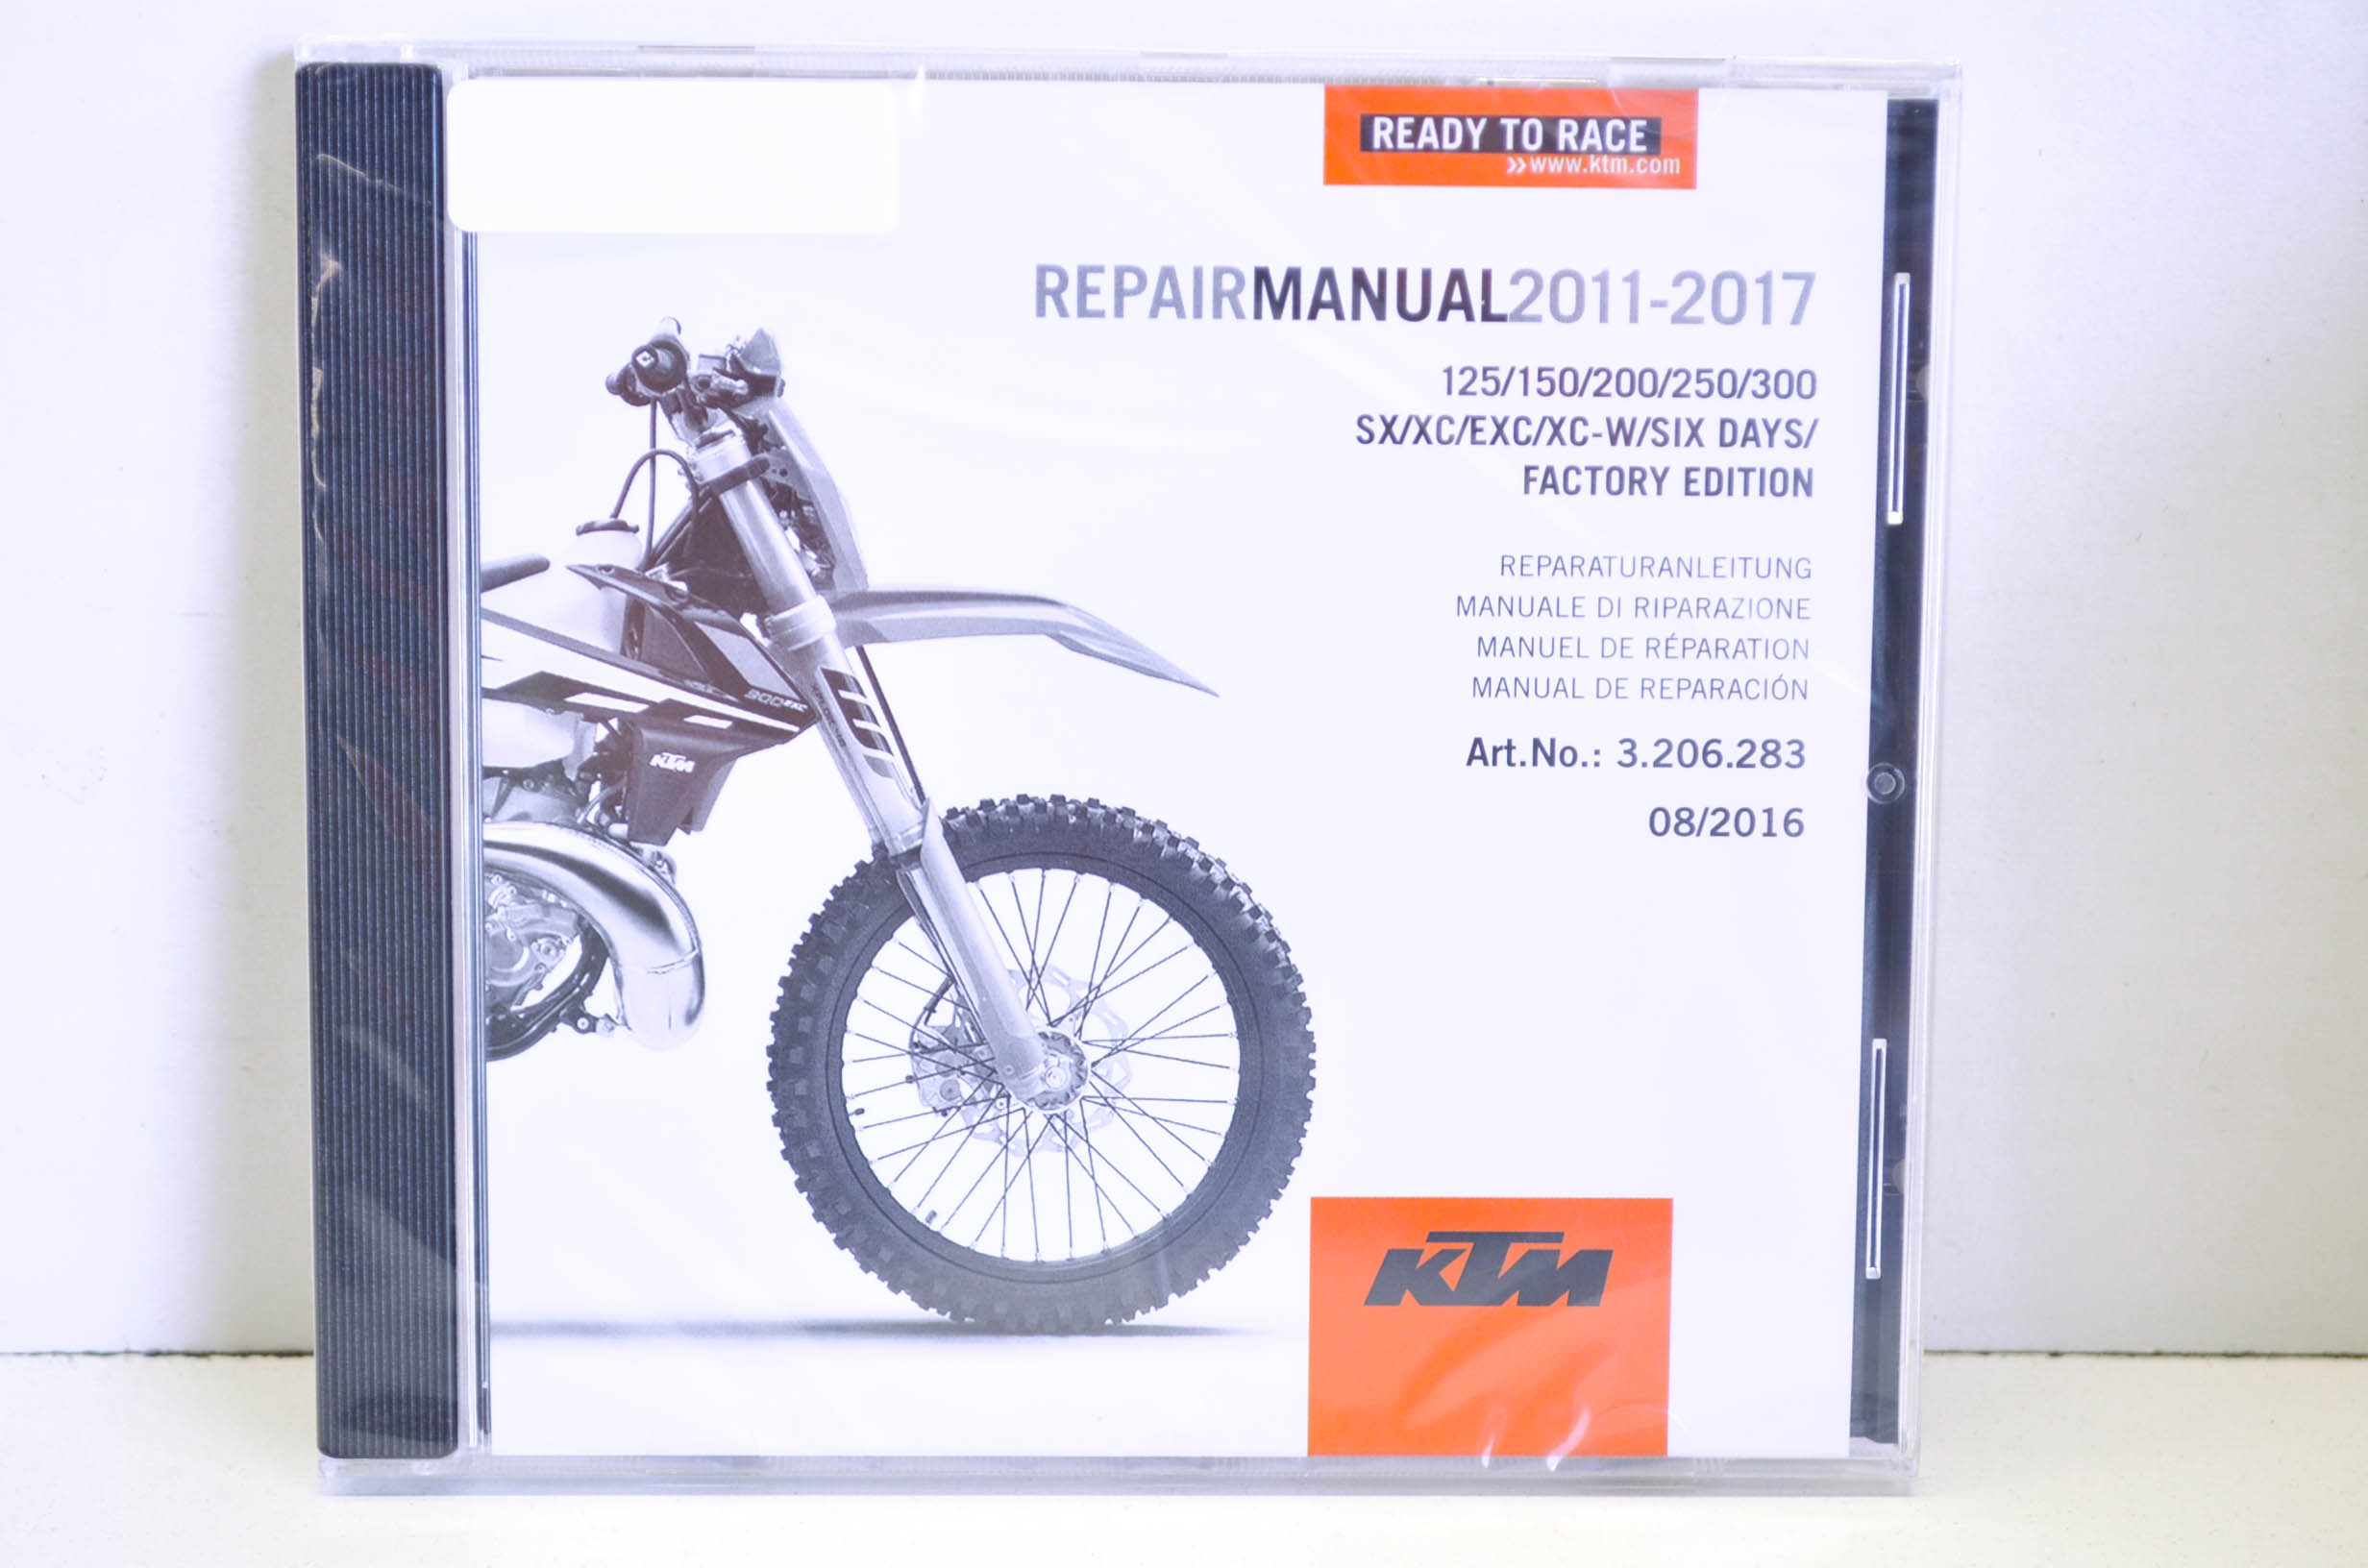 KTM 3206283 2011-2017 125-300 SX/XC/EXC/XC-W/ SIX DAYS Factory Edition Repair  Manual CD Disc QTY 1 - Walmart.com